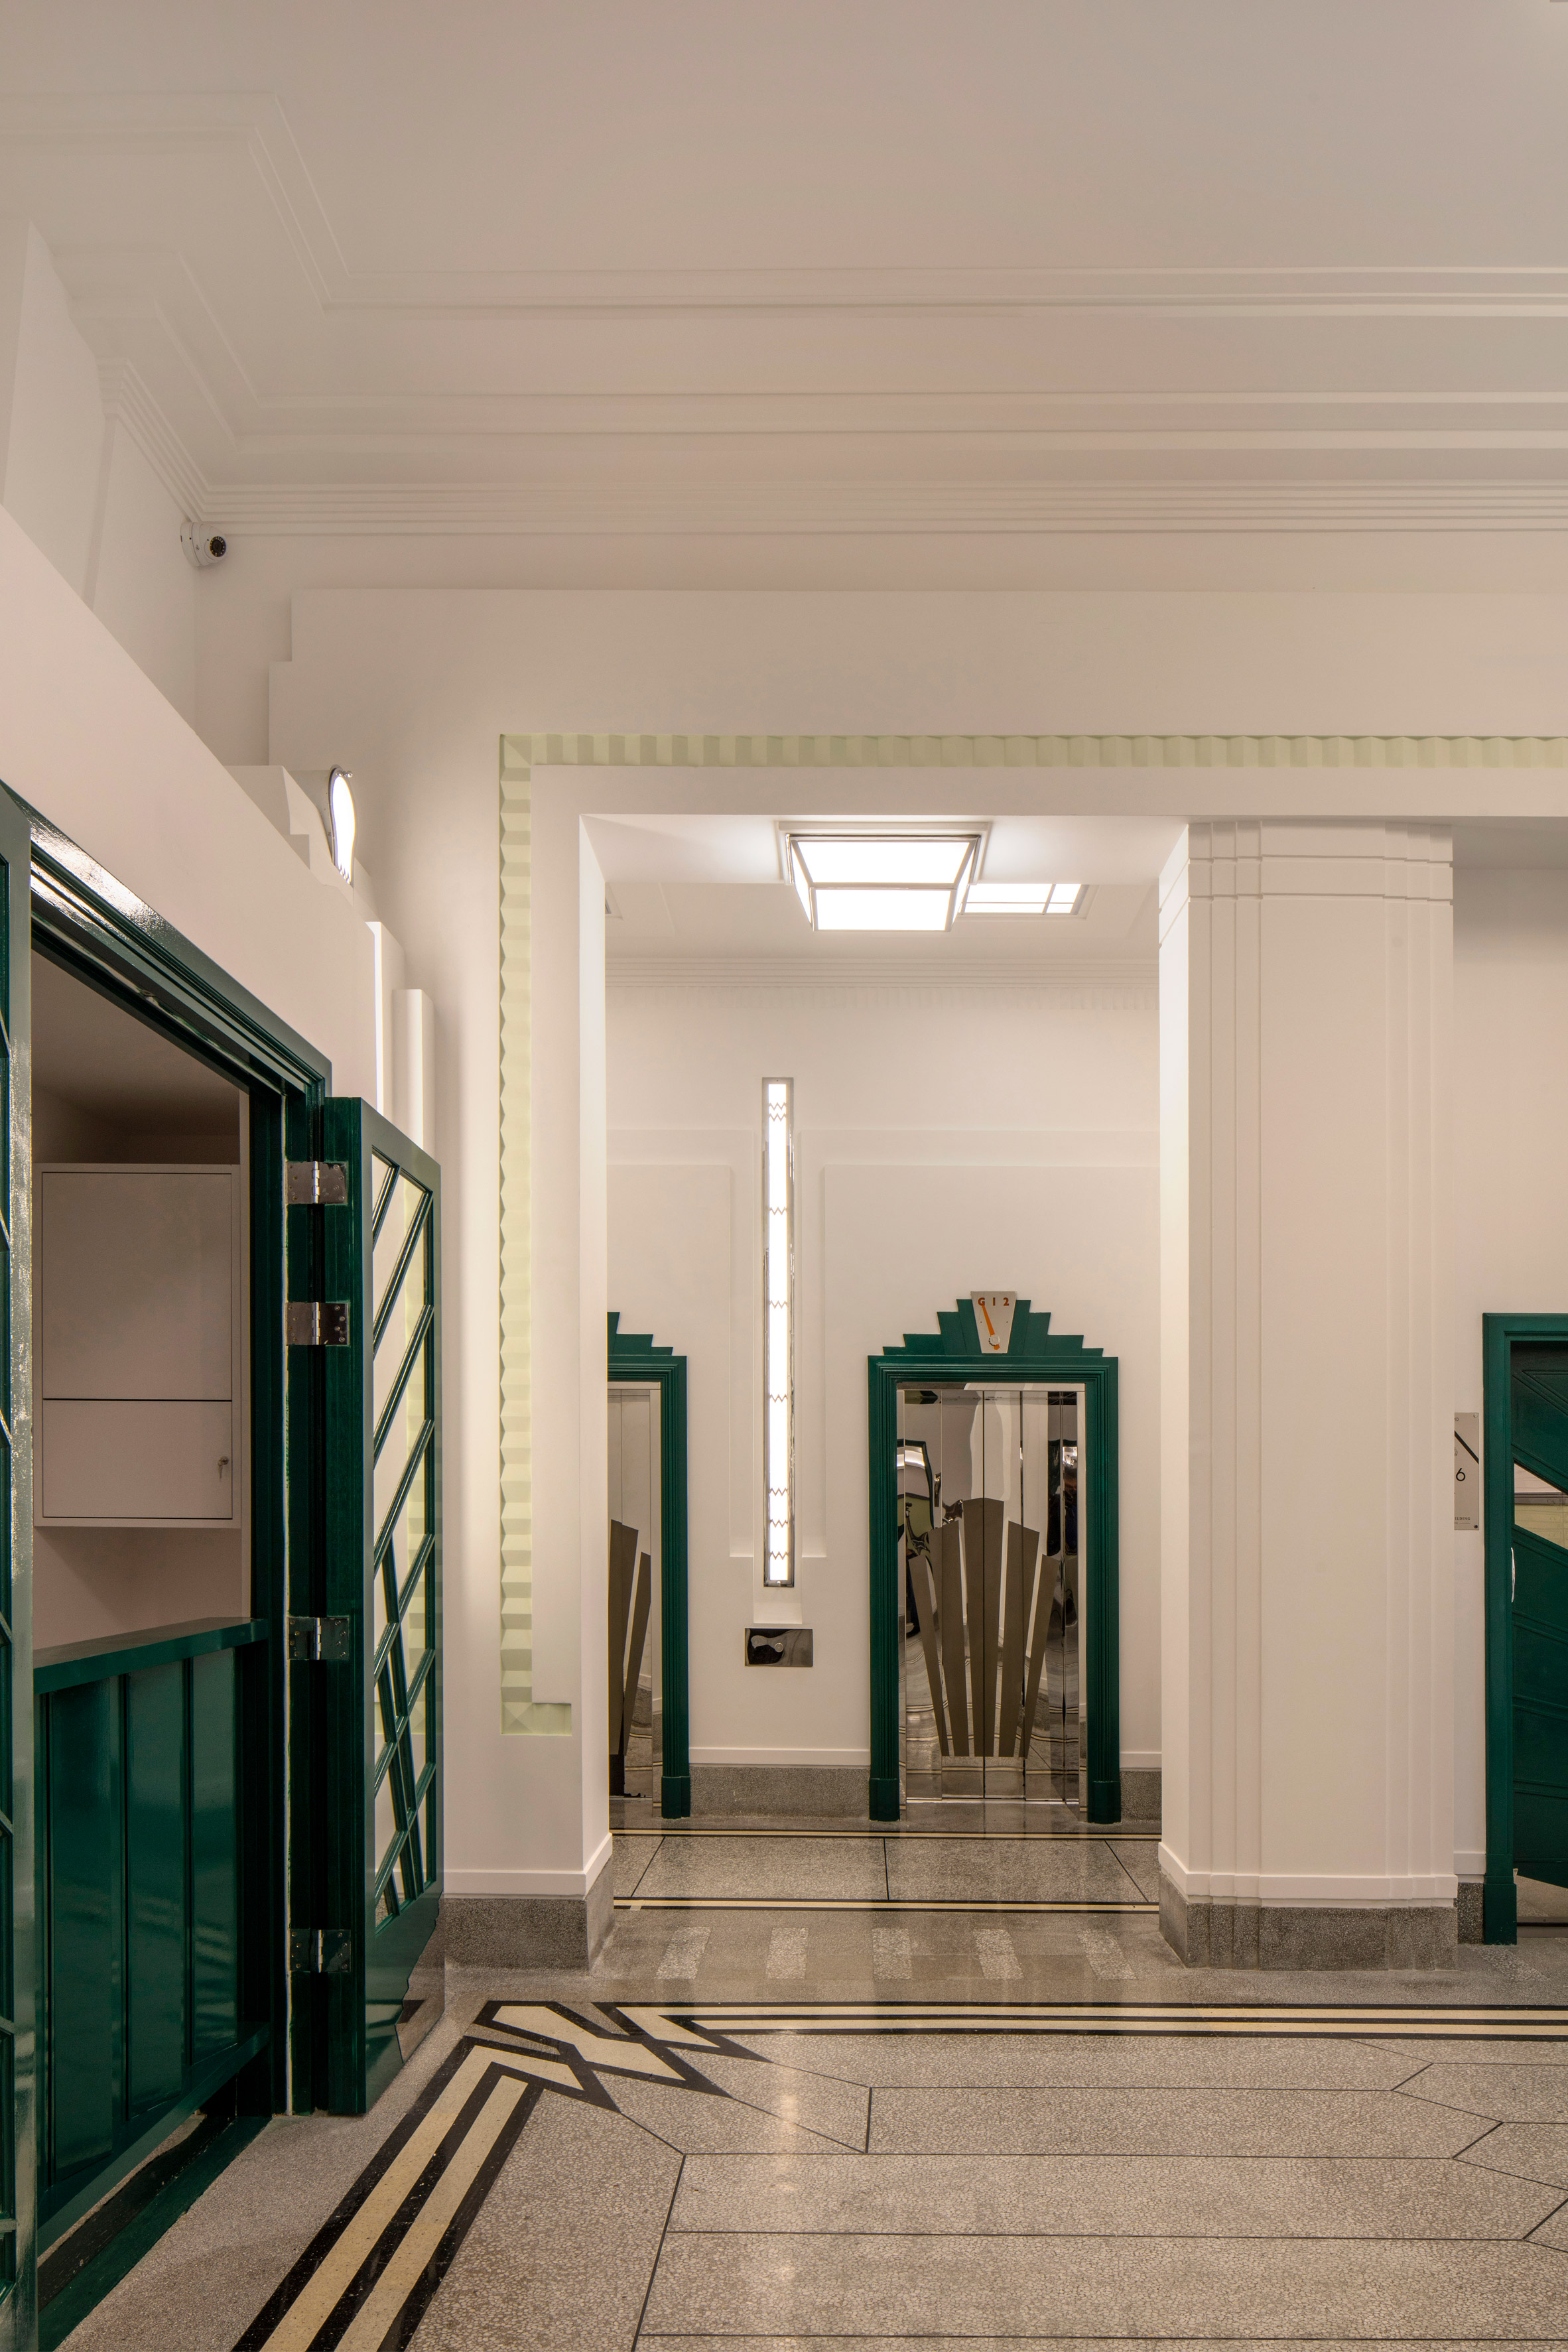 London S Art Deco Hoover Building Gets A Facelift 66 New